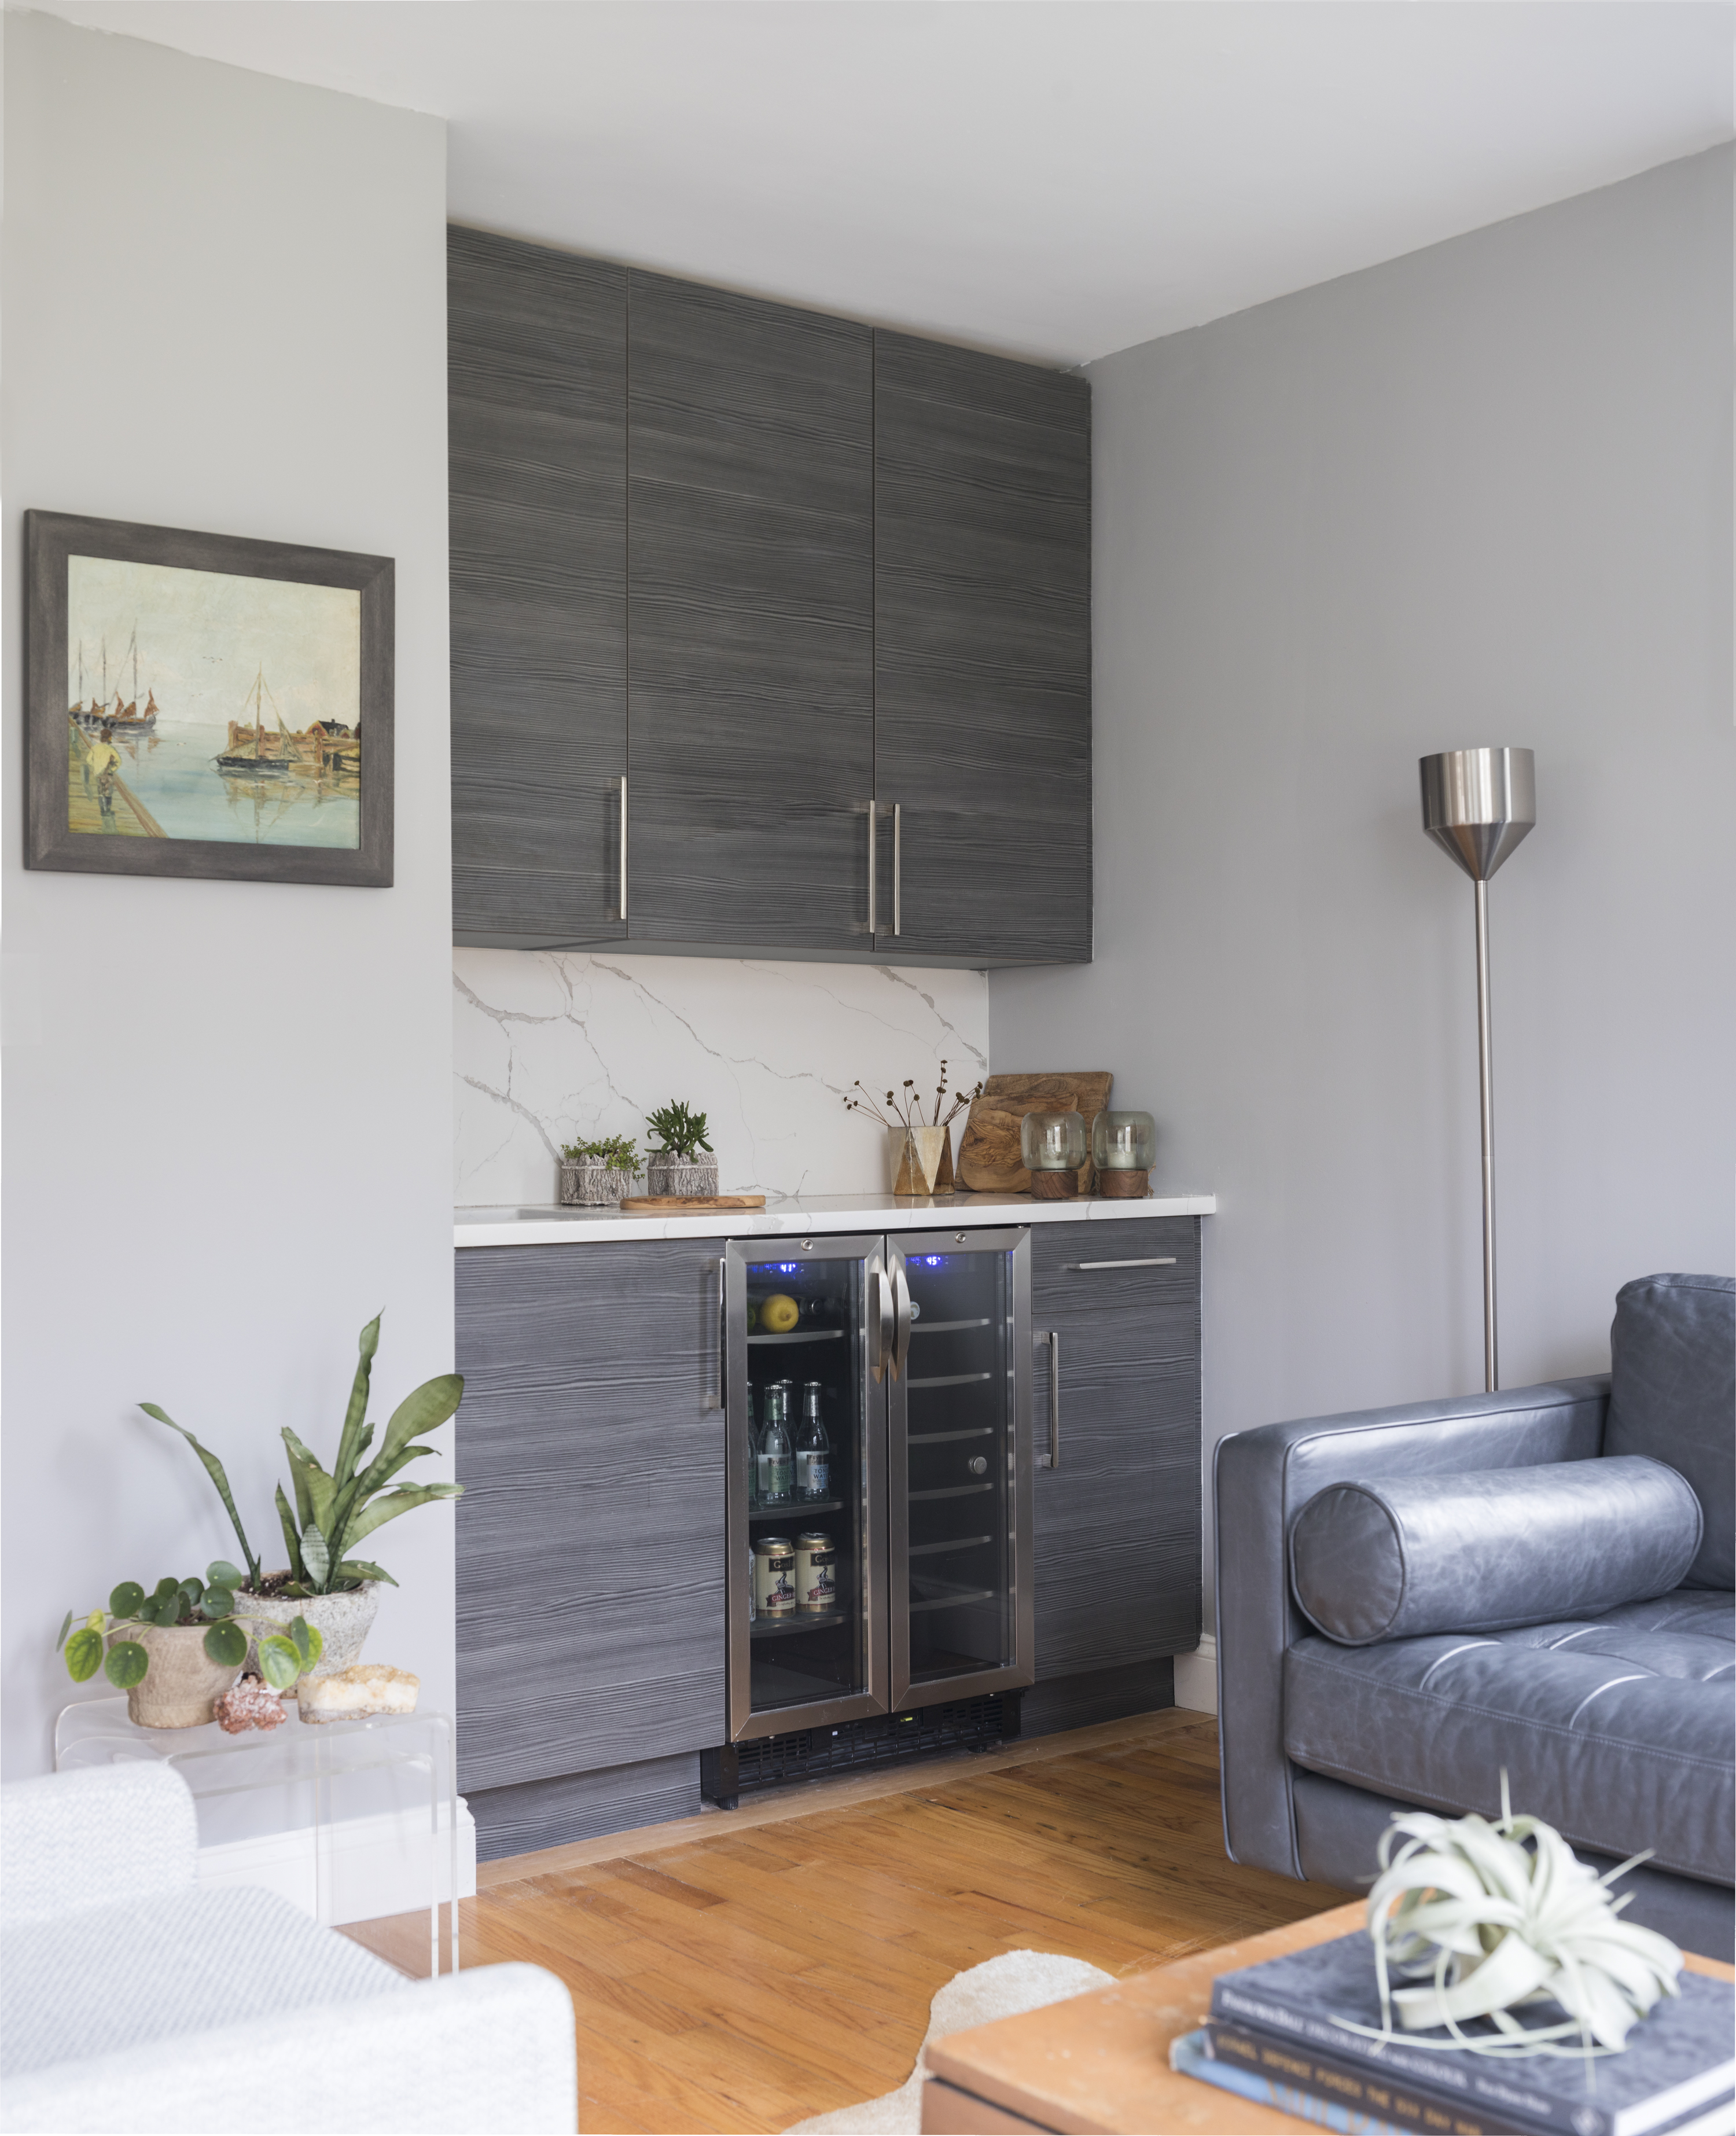 How To Fill Empty Corners In Rooms 16 Corner Decor Ideas Apartment Therapy